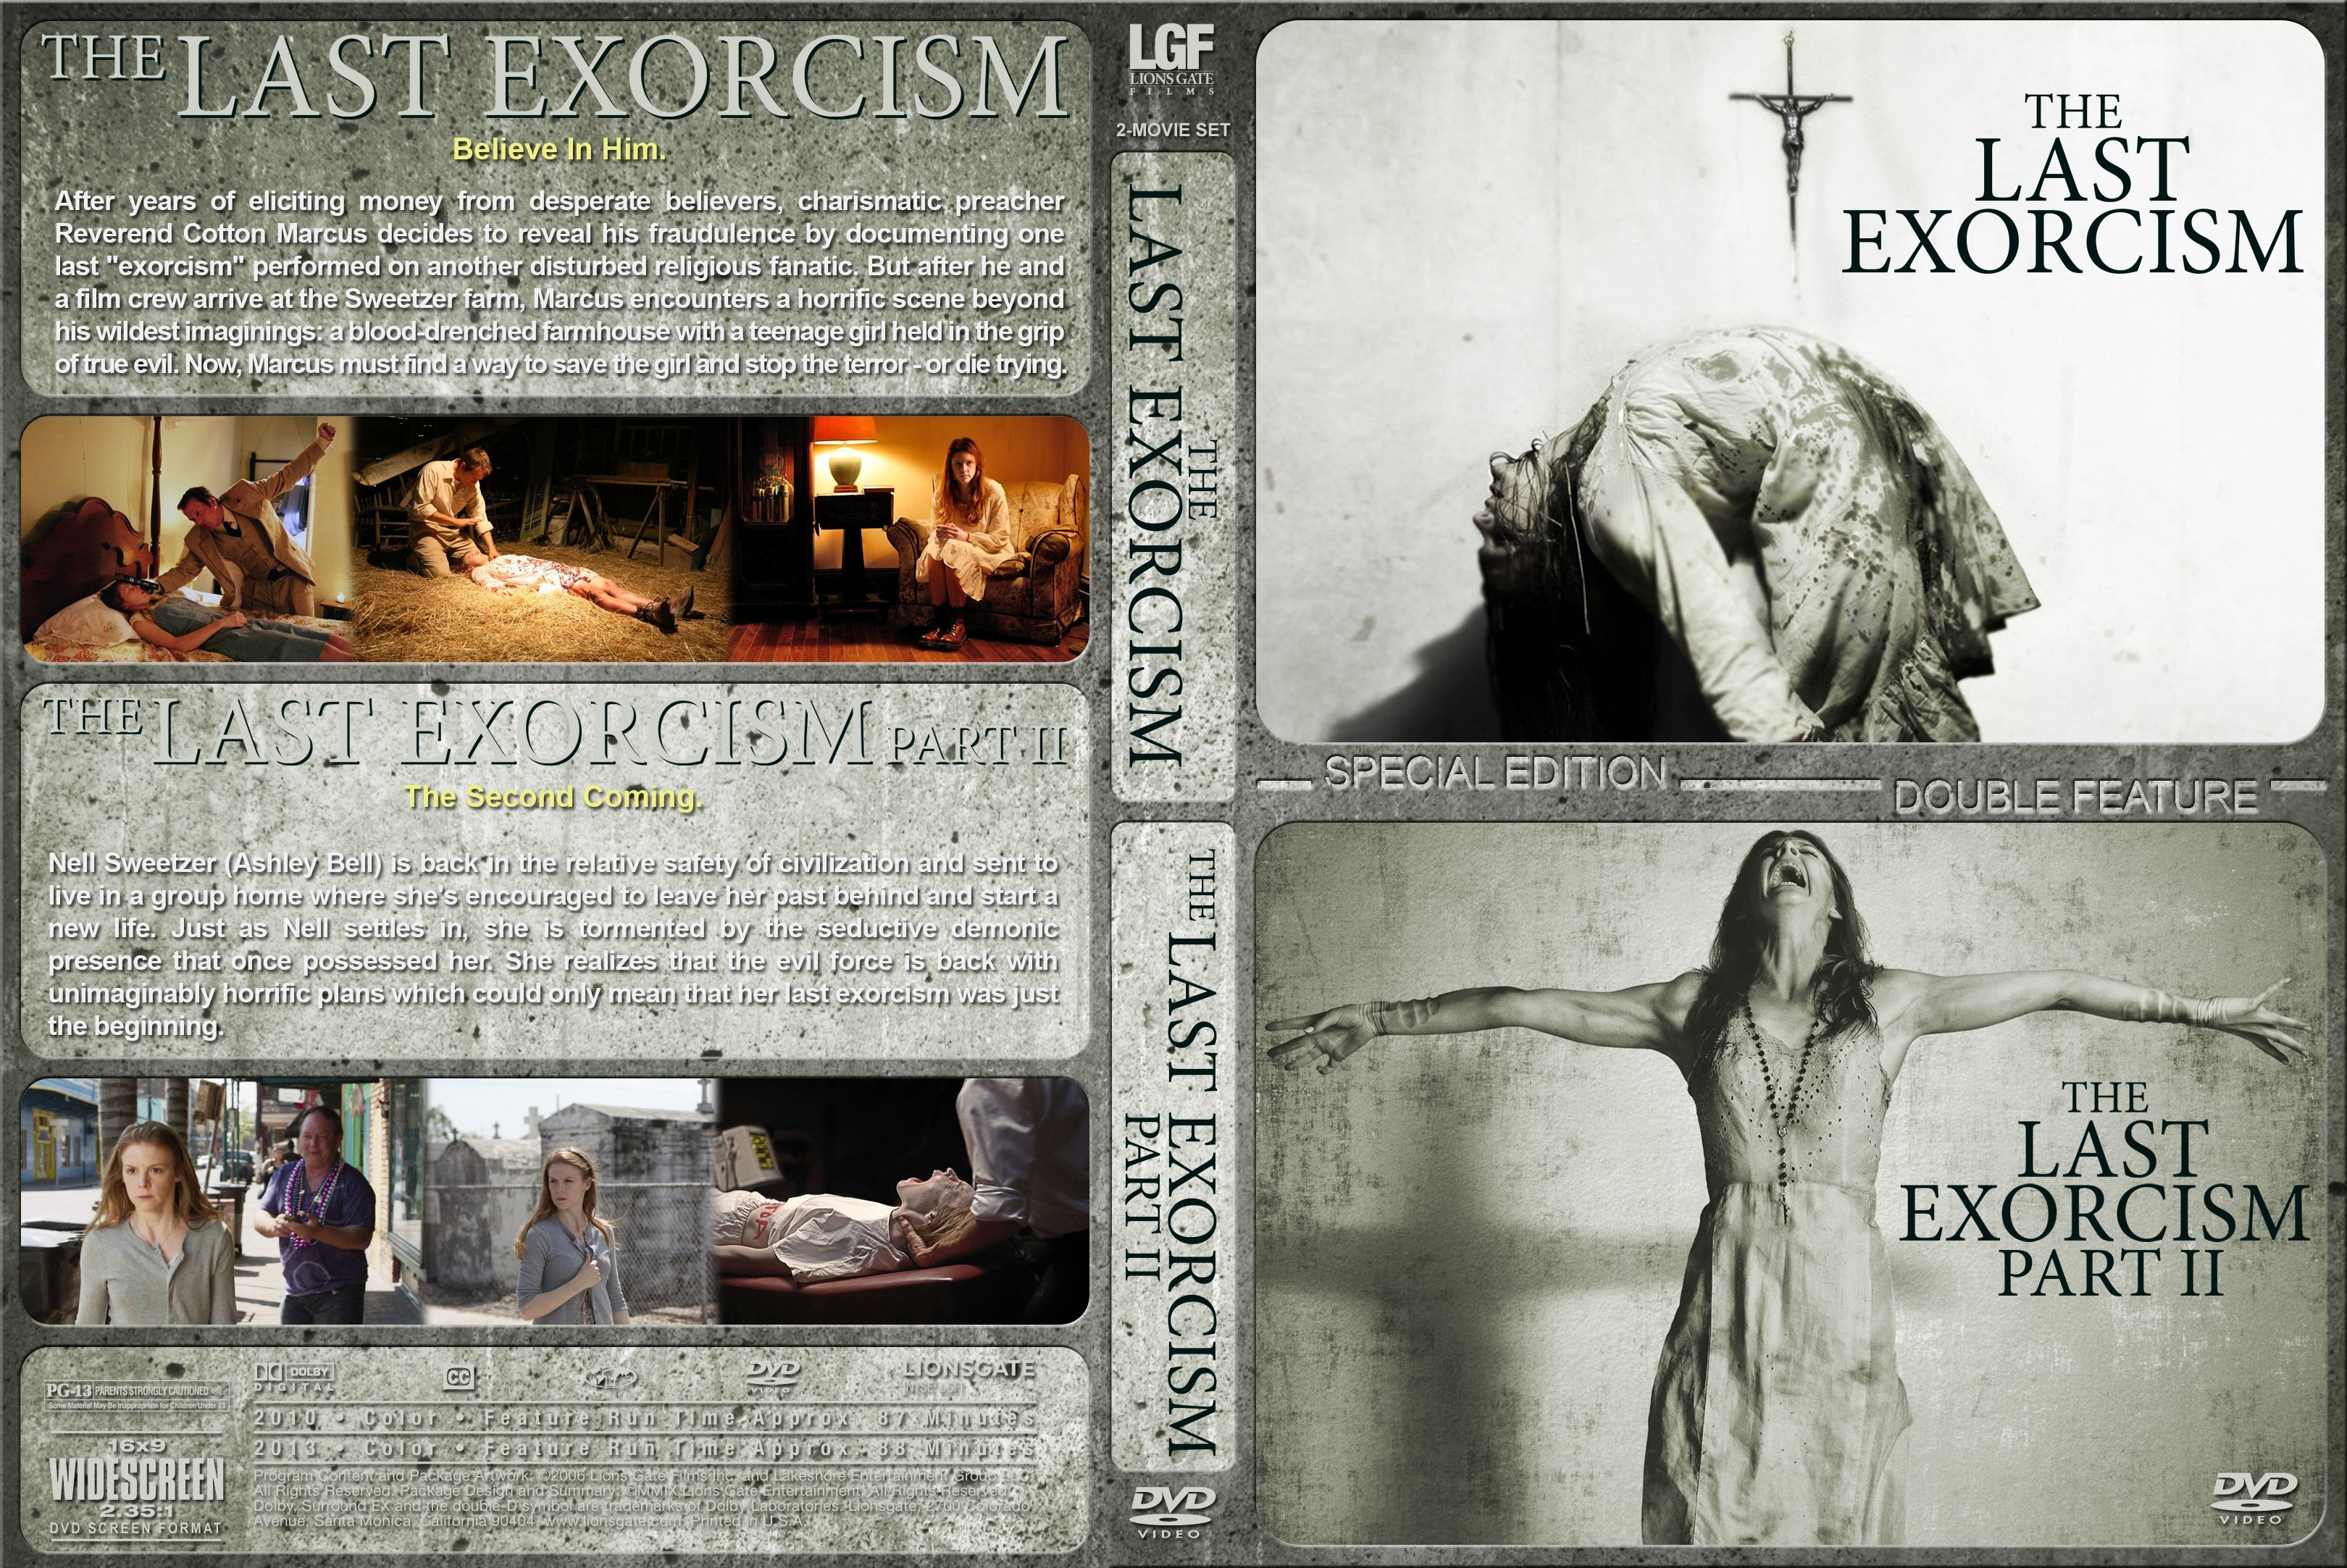 a report on exorcisms An exorcism explosion is putting people's mental health at risk, a british report into the booming religious practice warns the report, issued by christian and social issues think-tank theos, says the reported rise in the popularity of the medieval christian ritual is astonishing exorcisms are now a.